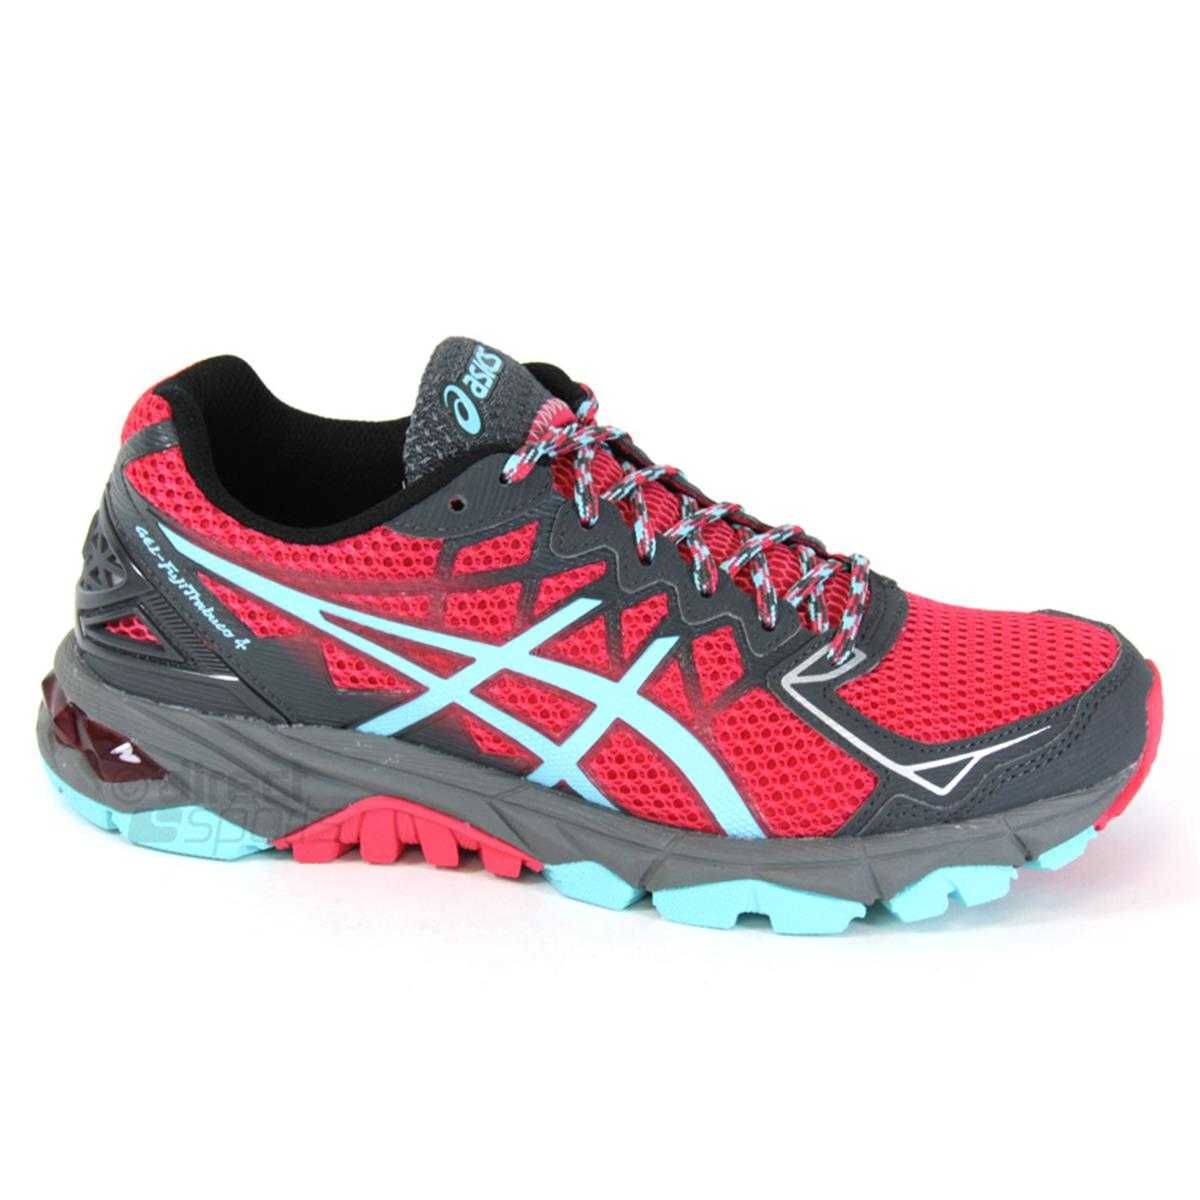 asics gel fuji trabuco 4 womens running shoes direct running. Black Bedroom Furniture Sets. Home Design Ideas